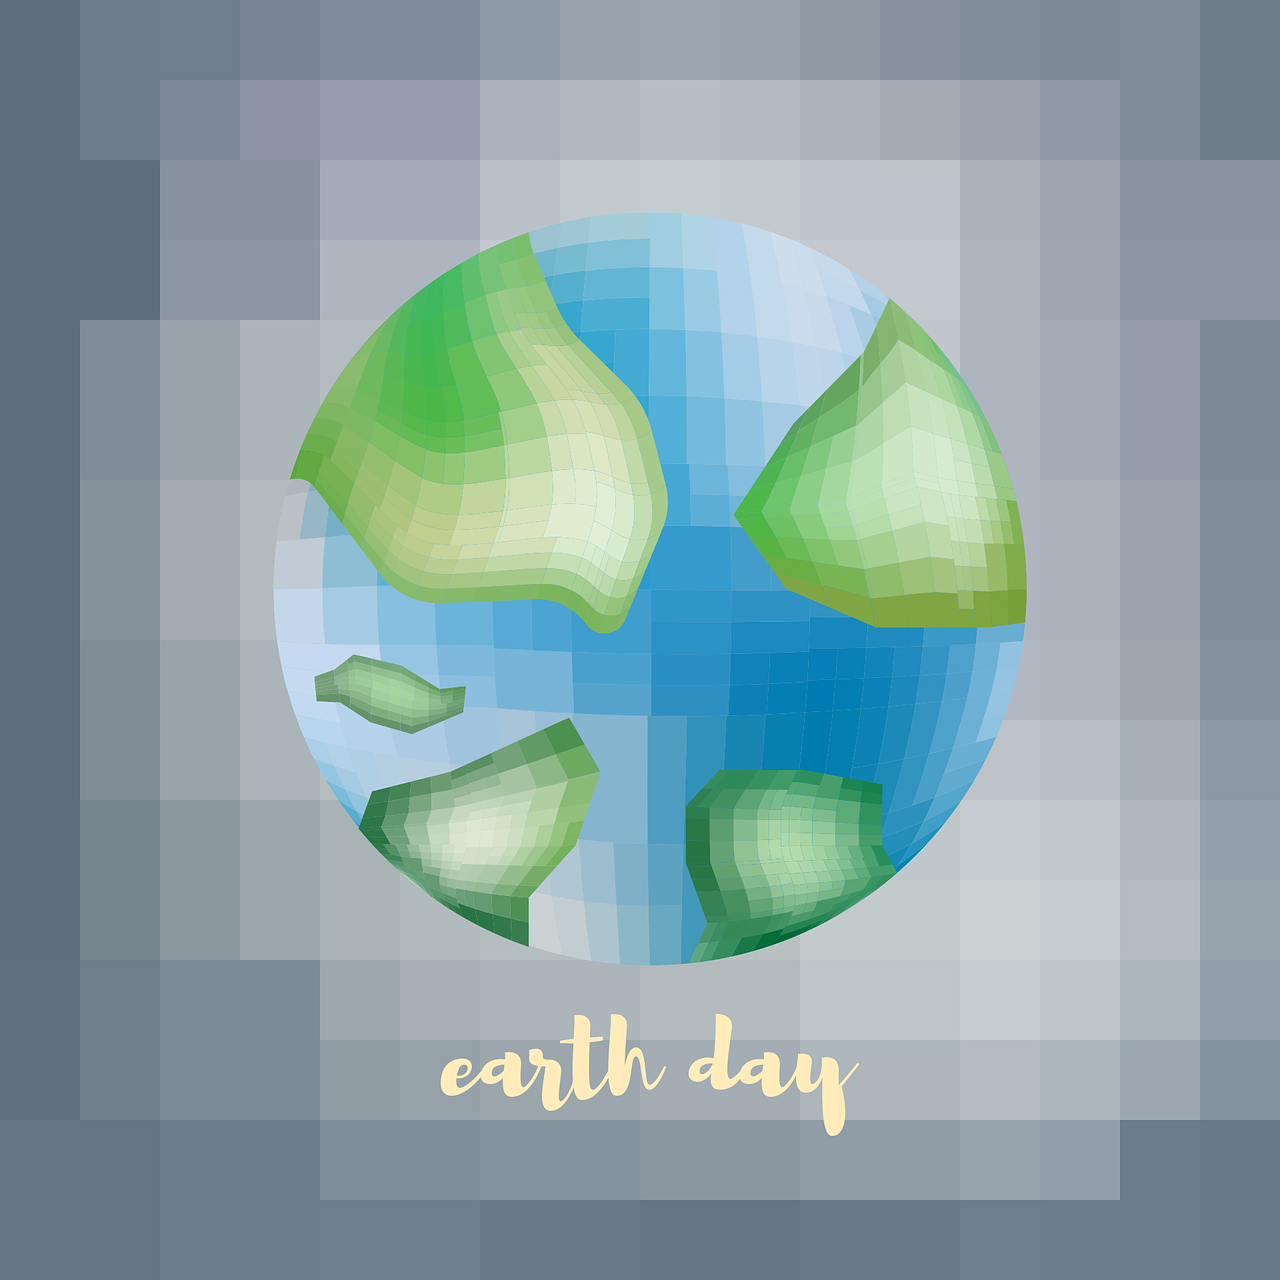 https://storage.needpix.com/rsynced_images/earth-day-1439492_1280.png